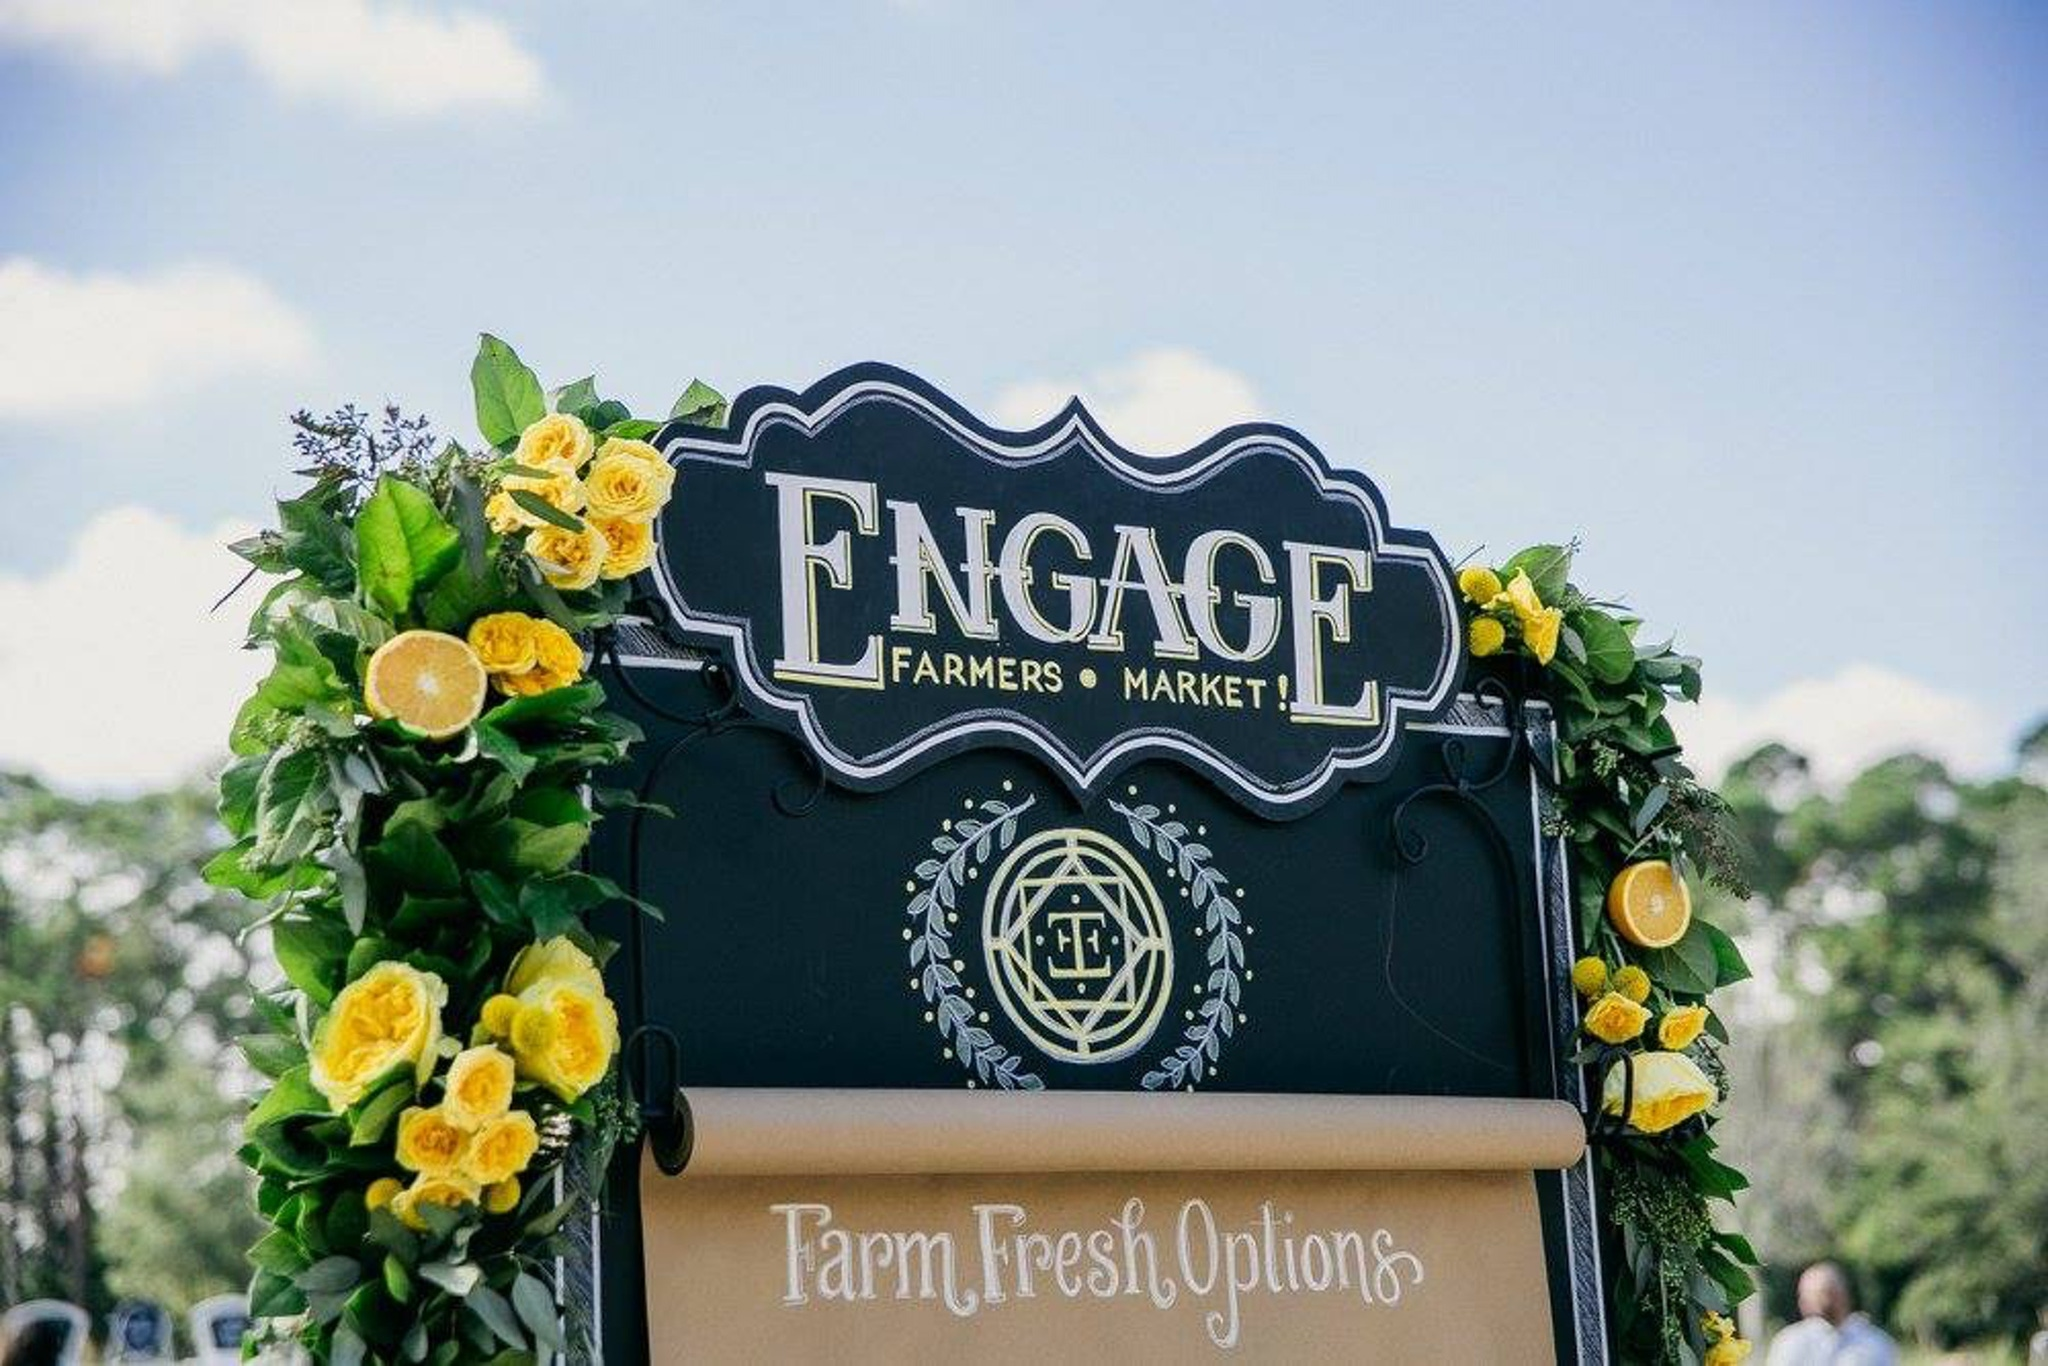 Engage sign